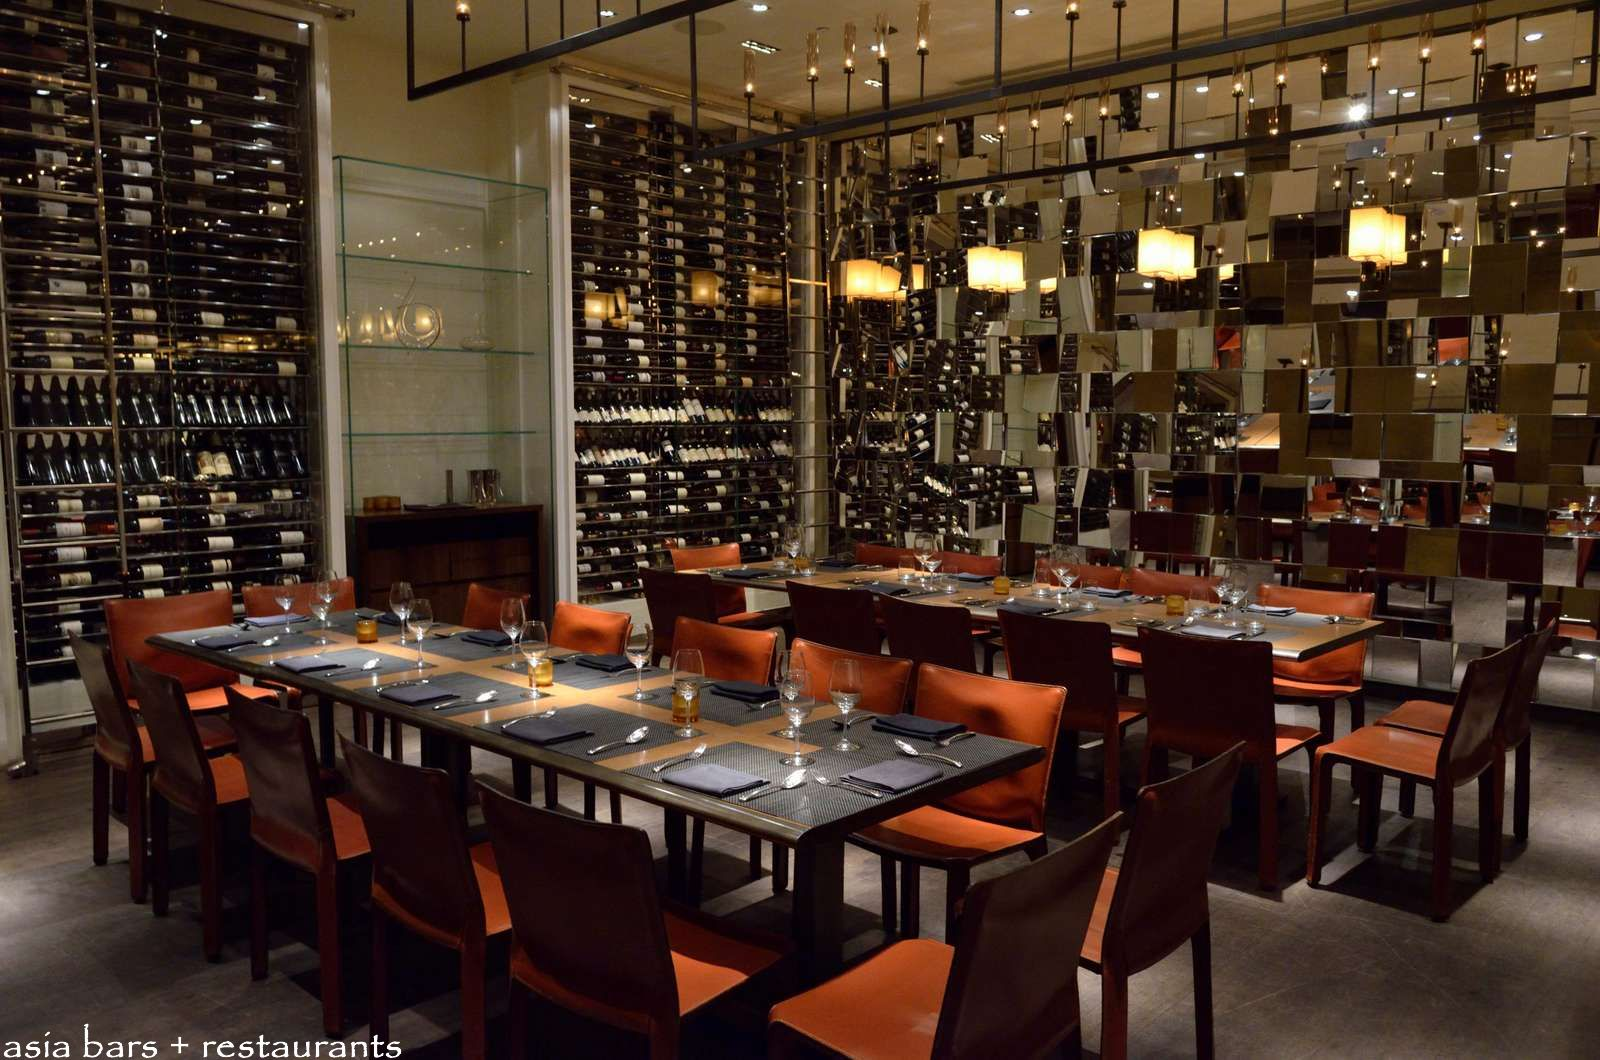 Light Walls Dark Floors Bathroom Contemporary With Vertical Mirror Natural Lighting Dark Wood Trim together with Ital  2250 Swarovski Crystal Ceiling Lights P3301 furthermore Media Room Seating Ideas likewise Apple Nano 2GB 4GB 8GB 3955506 3955507 likewise Cut By Wolfgang Puck Steakhouse At Marina Bay Sands Singapore. on leather lighting fixtures